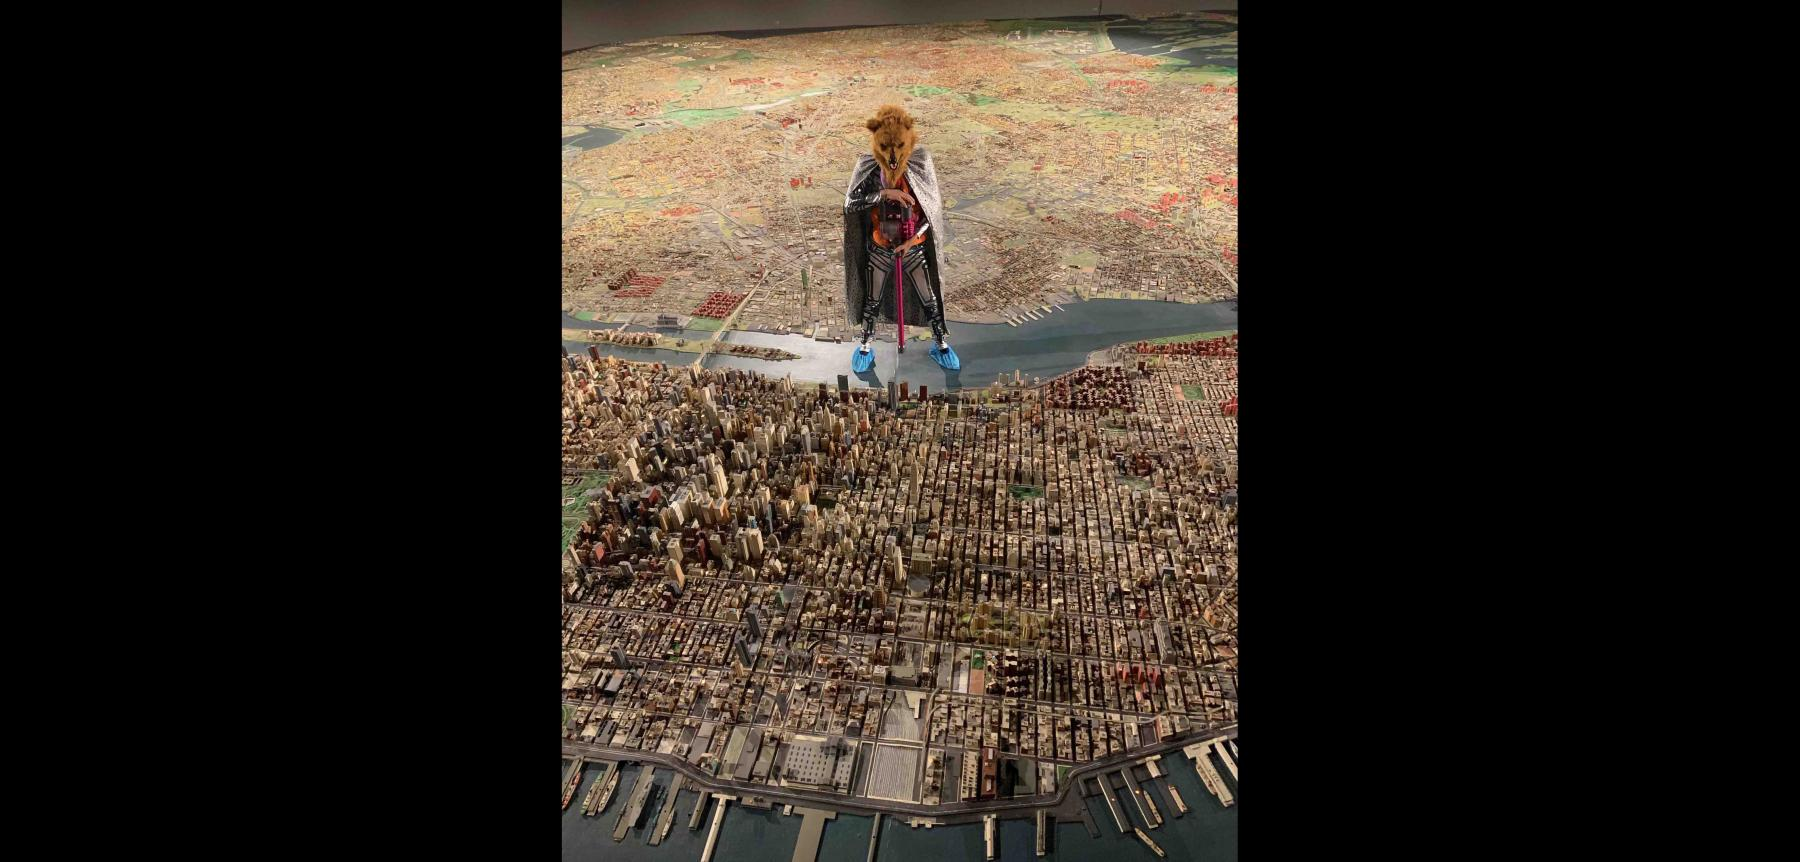 Figure wearing an animal mask and cape with blue slippers on feet, standing in a flat river on a large scale map depicting a land mass behind the figure and a city in front of it.